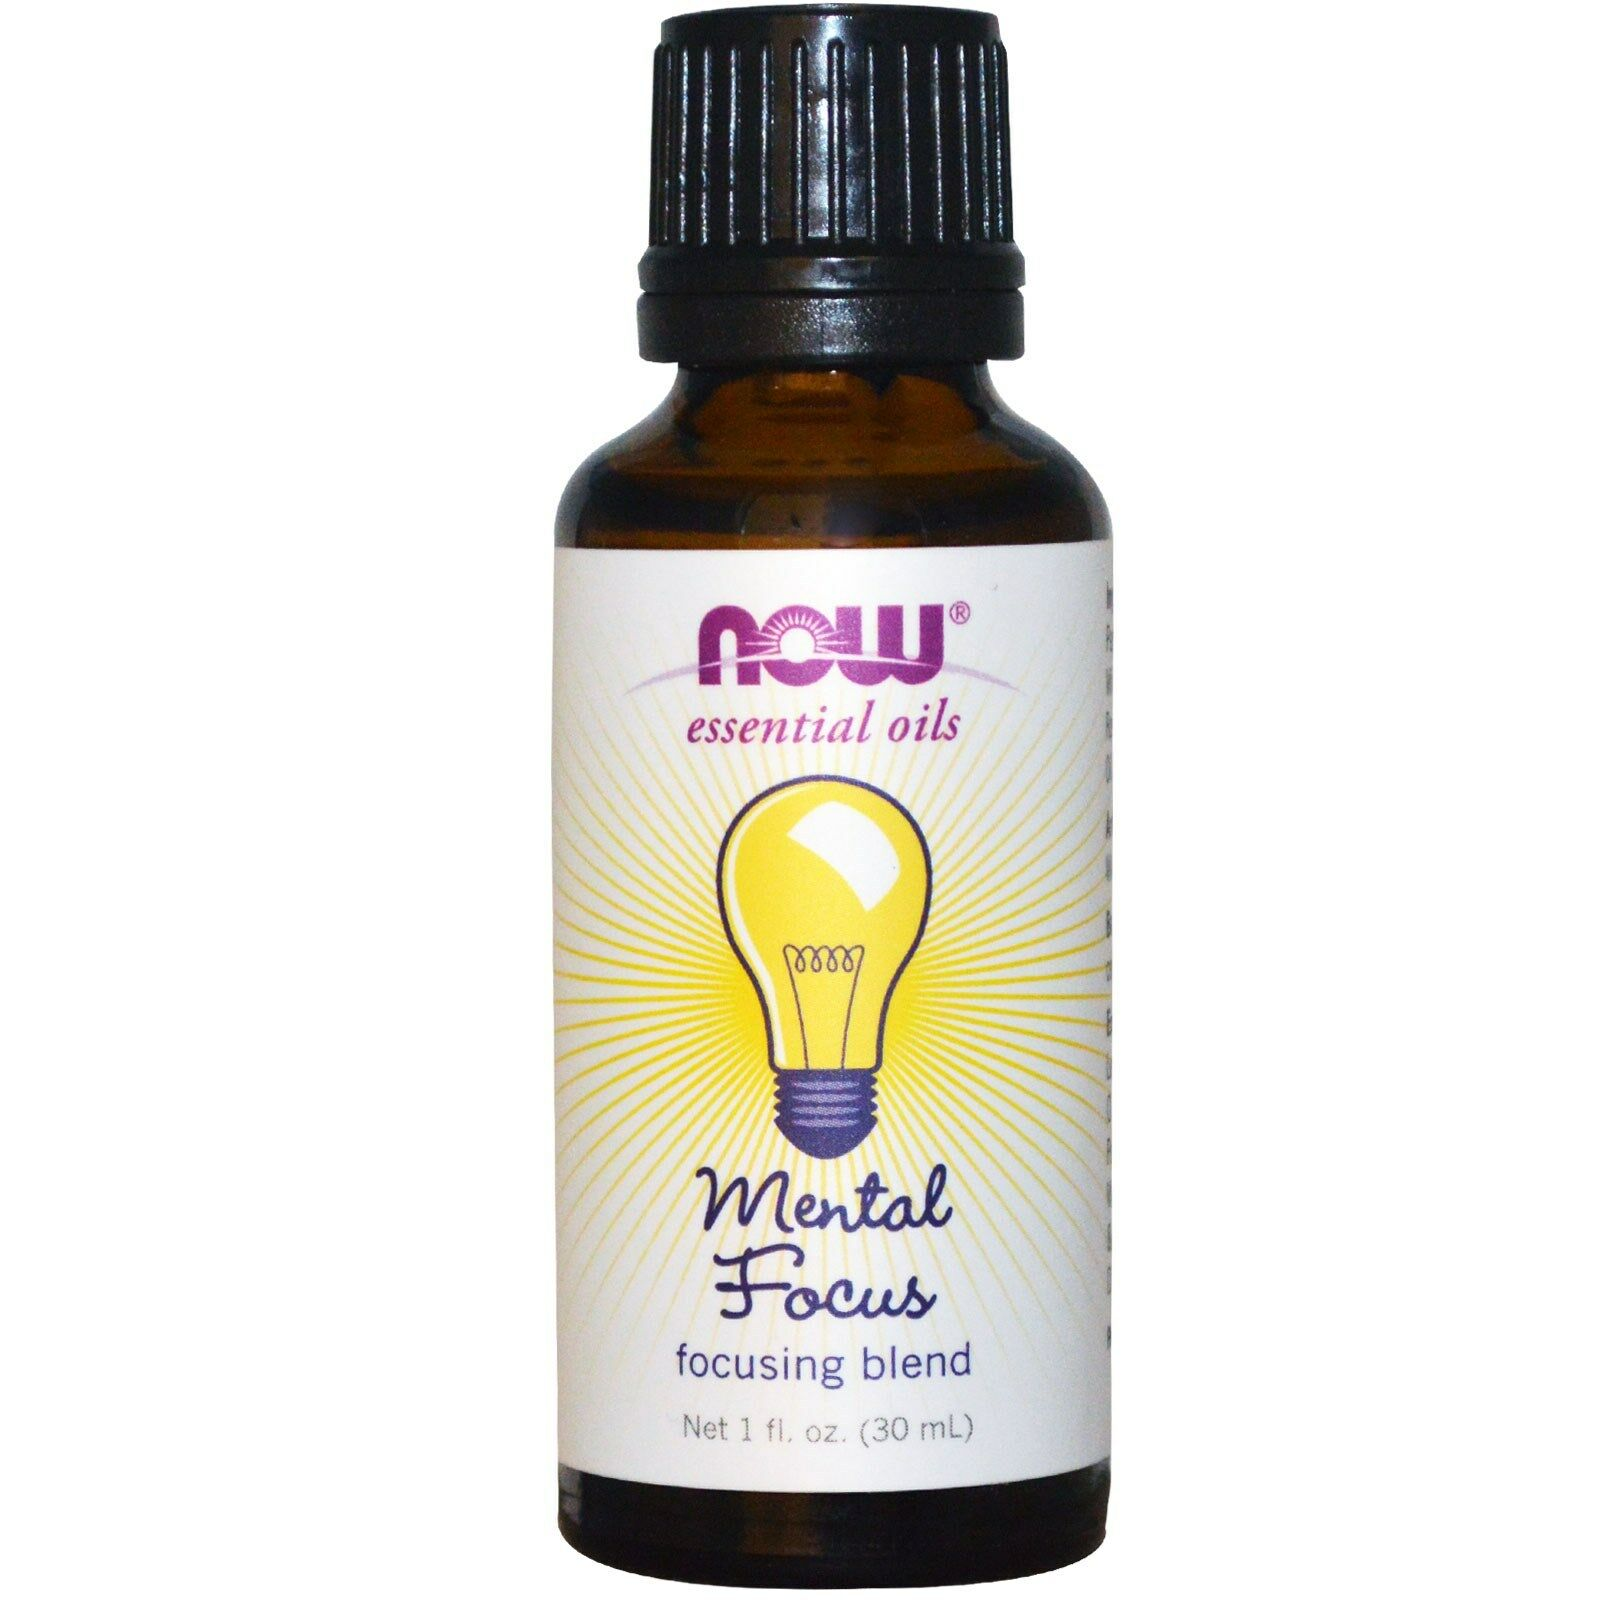 NOW Foods 1 oz Essential Oils and Blend Oils - FREE SHIPPING! Mental Focus Blend